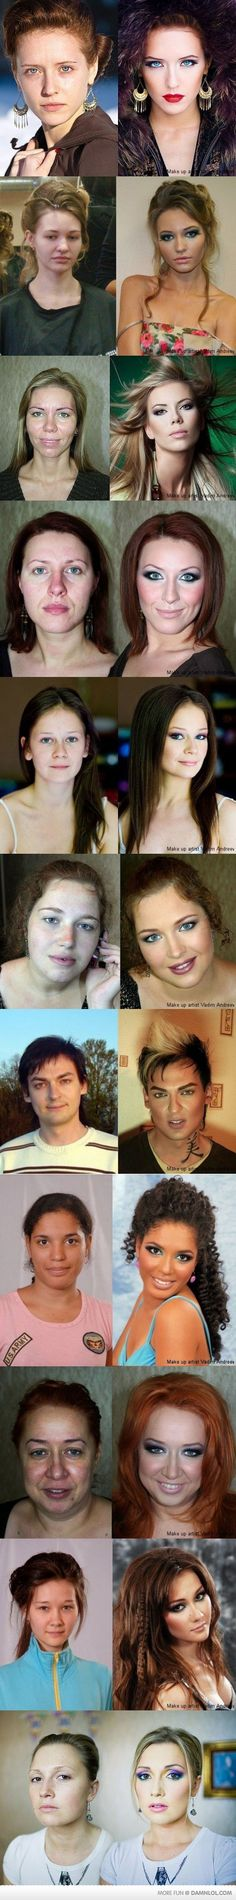 the true power of makeup...  I love a good makeover but I think the photography helped a little too.